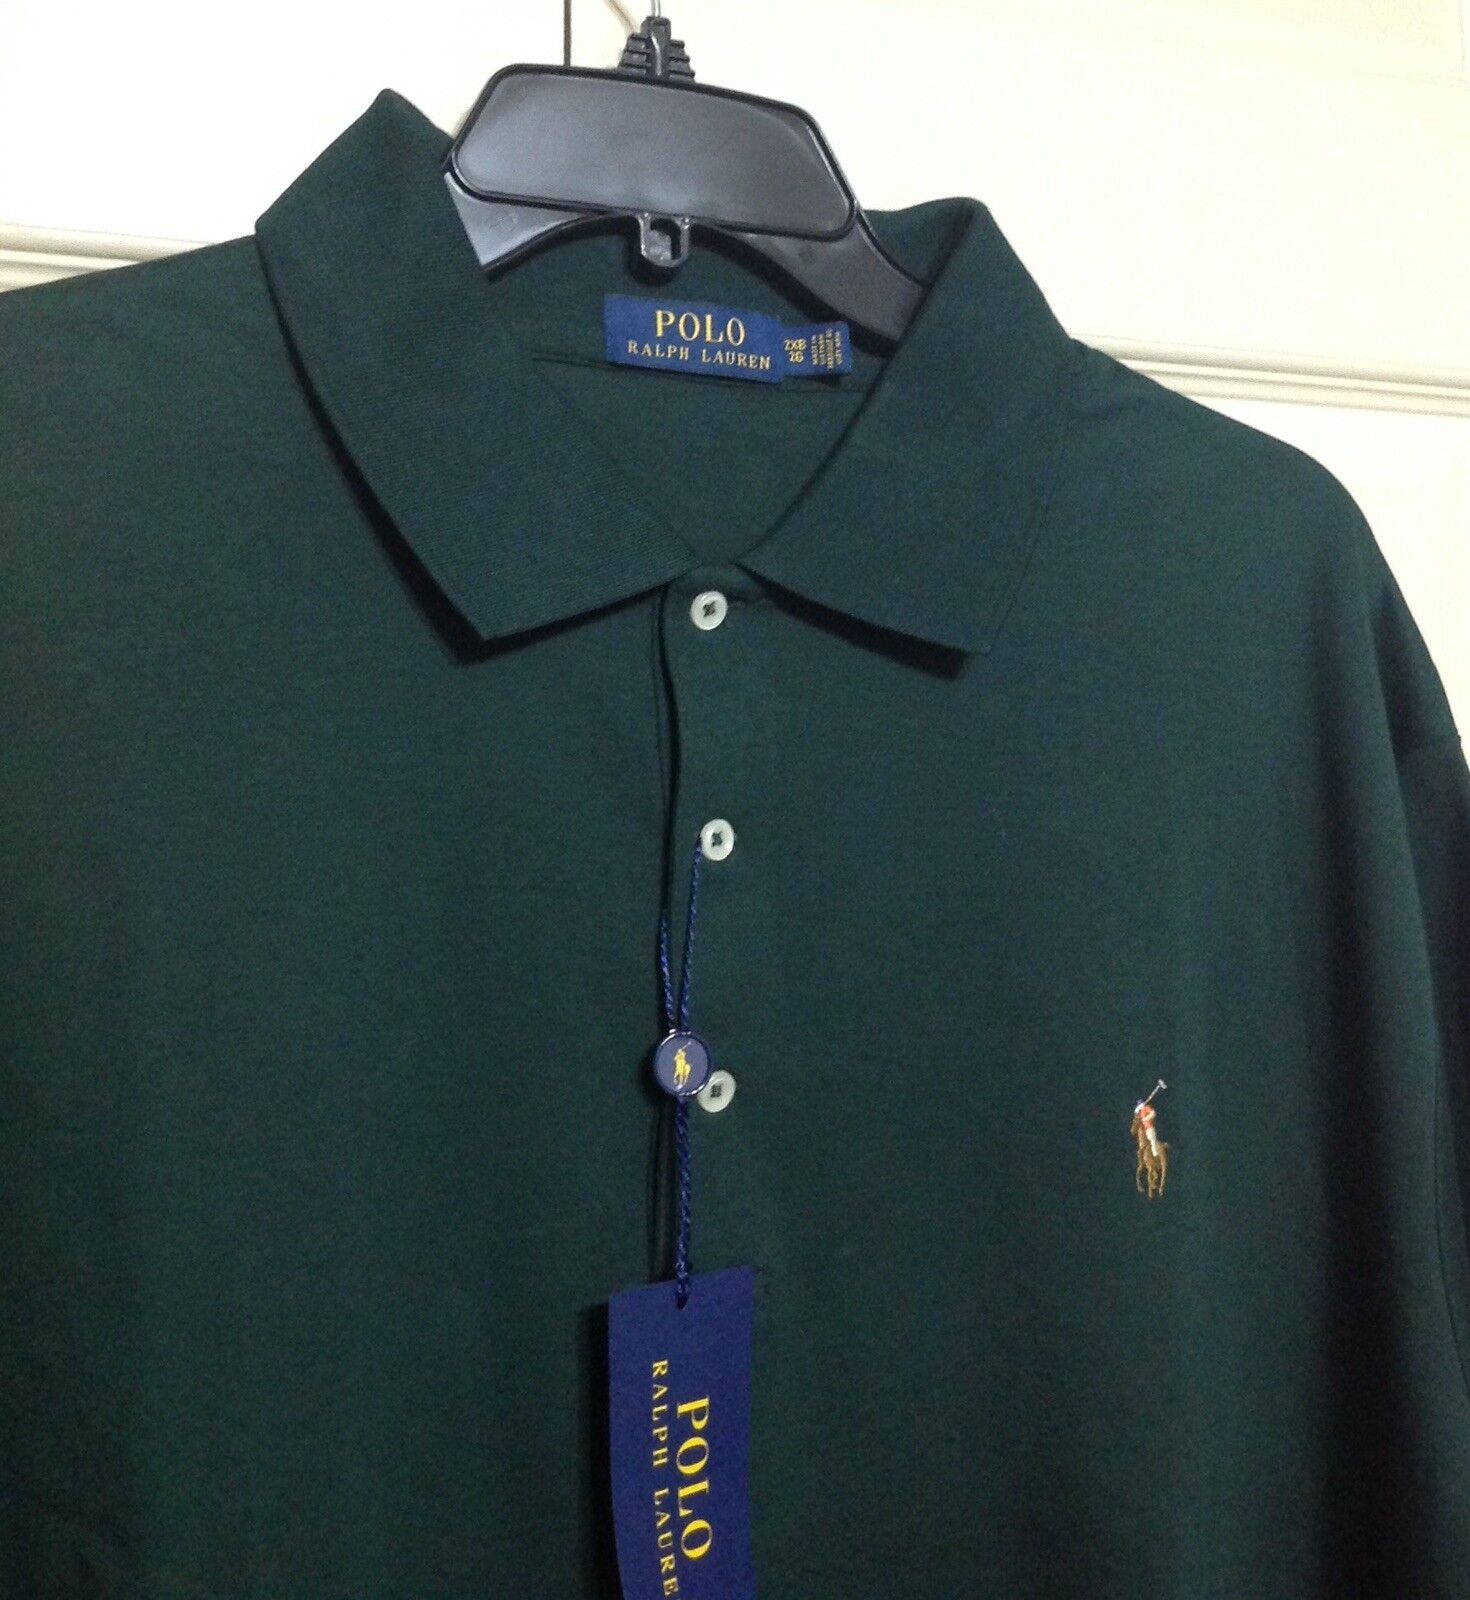 NWT POLO RALPH LAUREN CLASSIC FIT SHIRT SHORT SLEEVE SHIRT FIT  SOFT COTTON 3XB verde  98 8bbeee